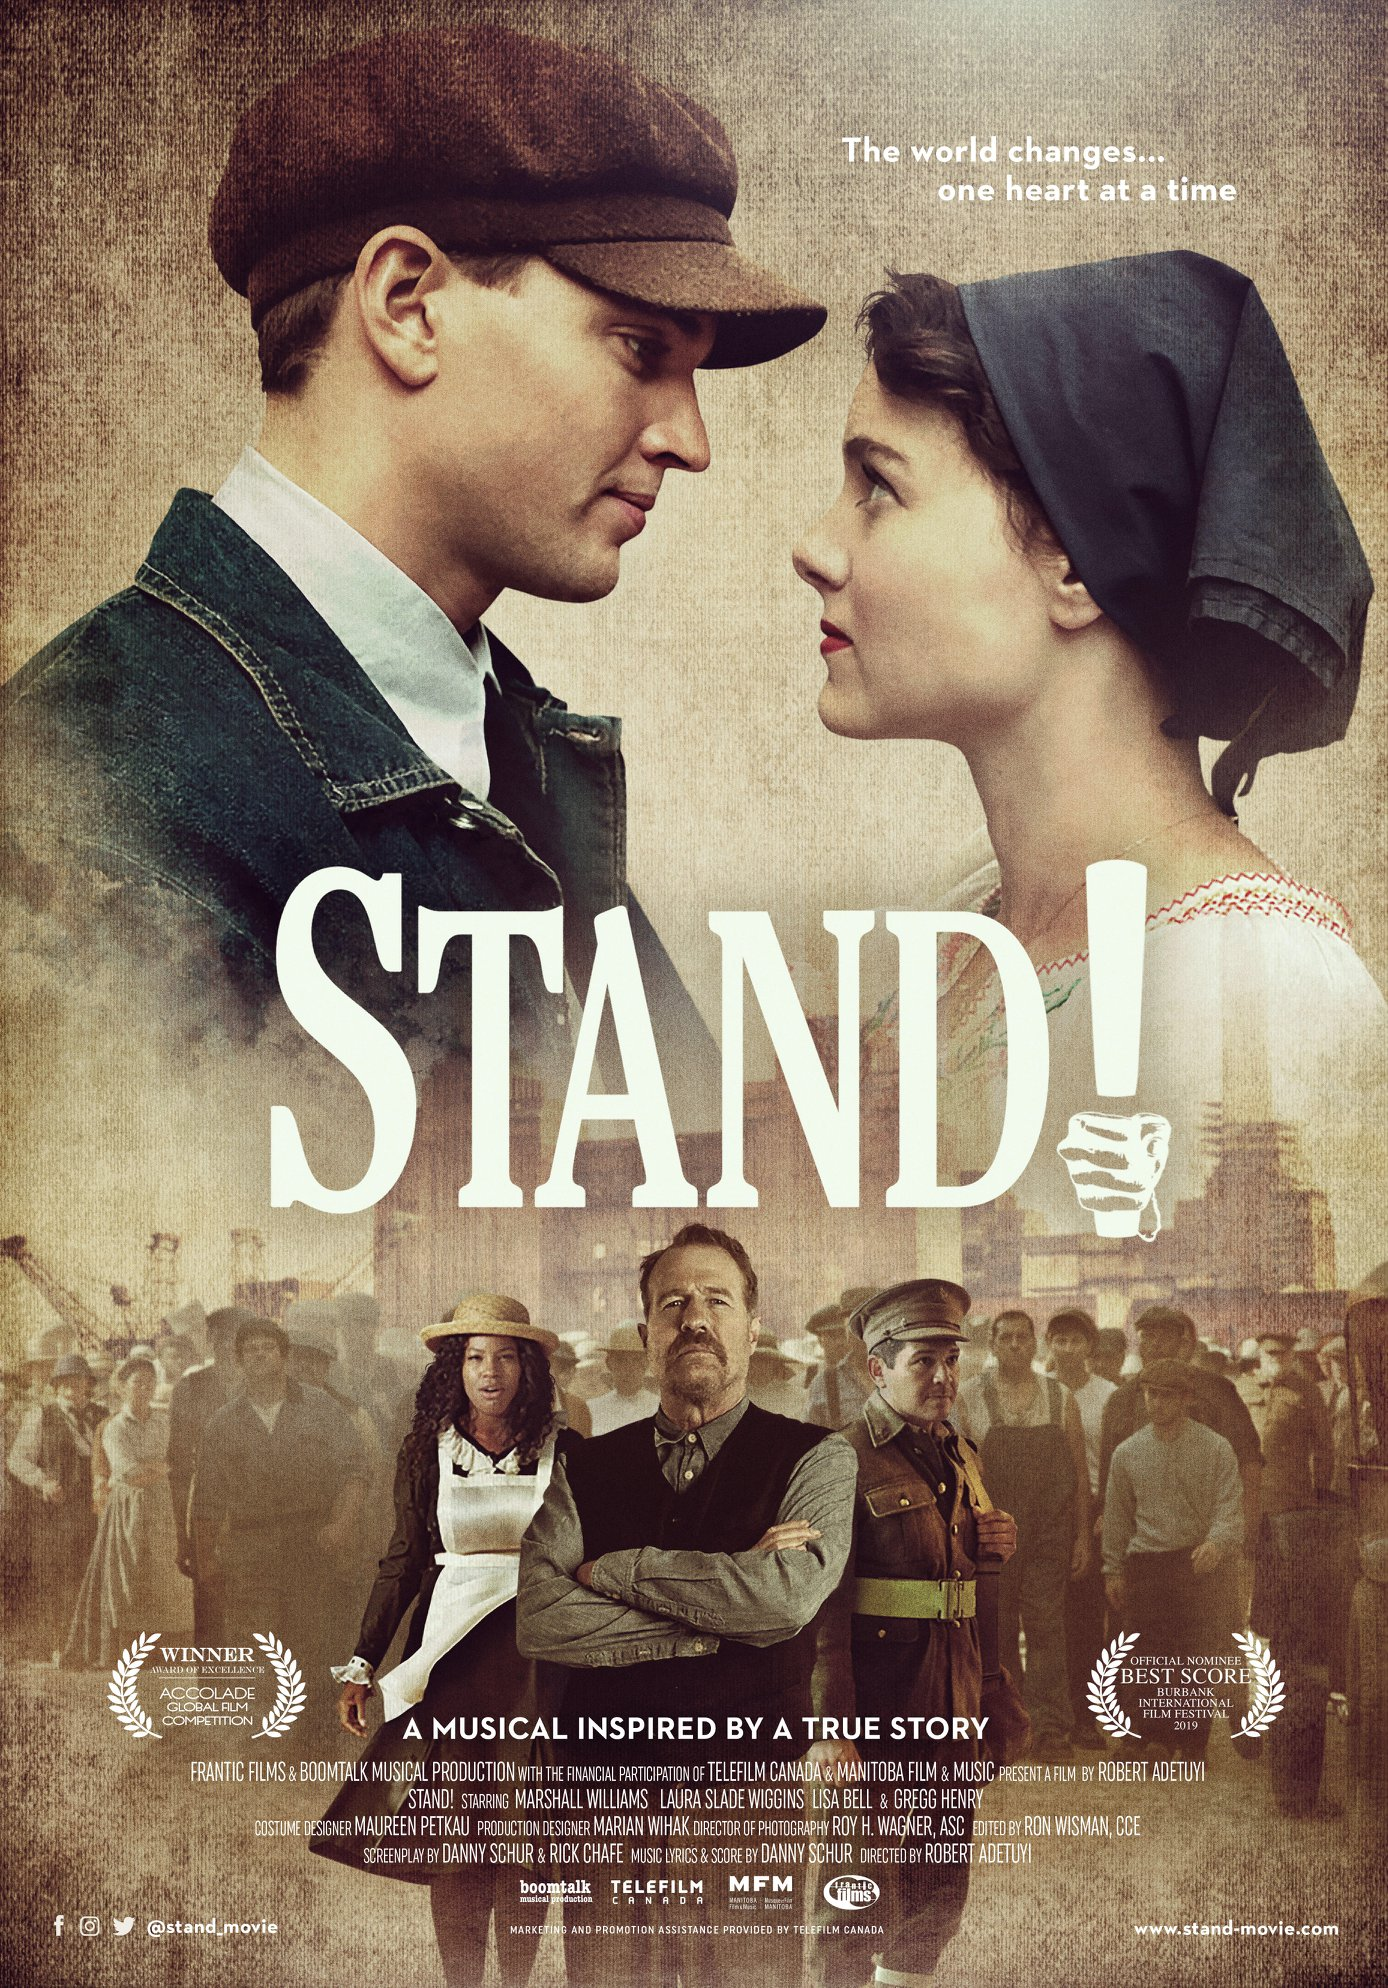 Still of Stand! Movie Musical